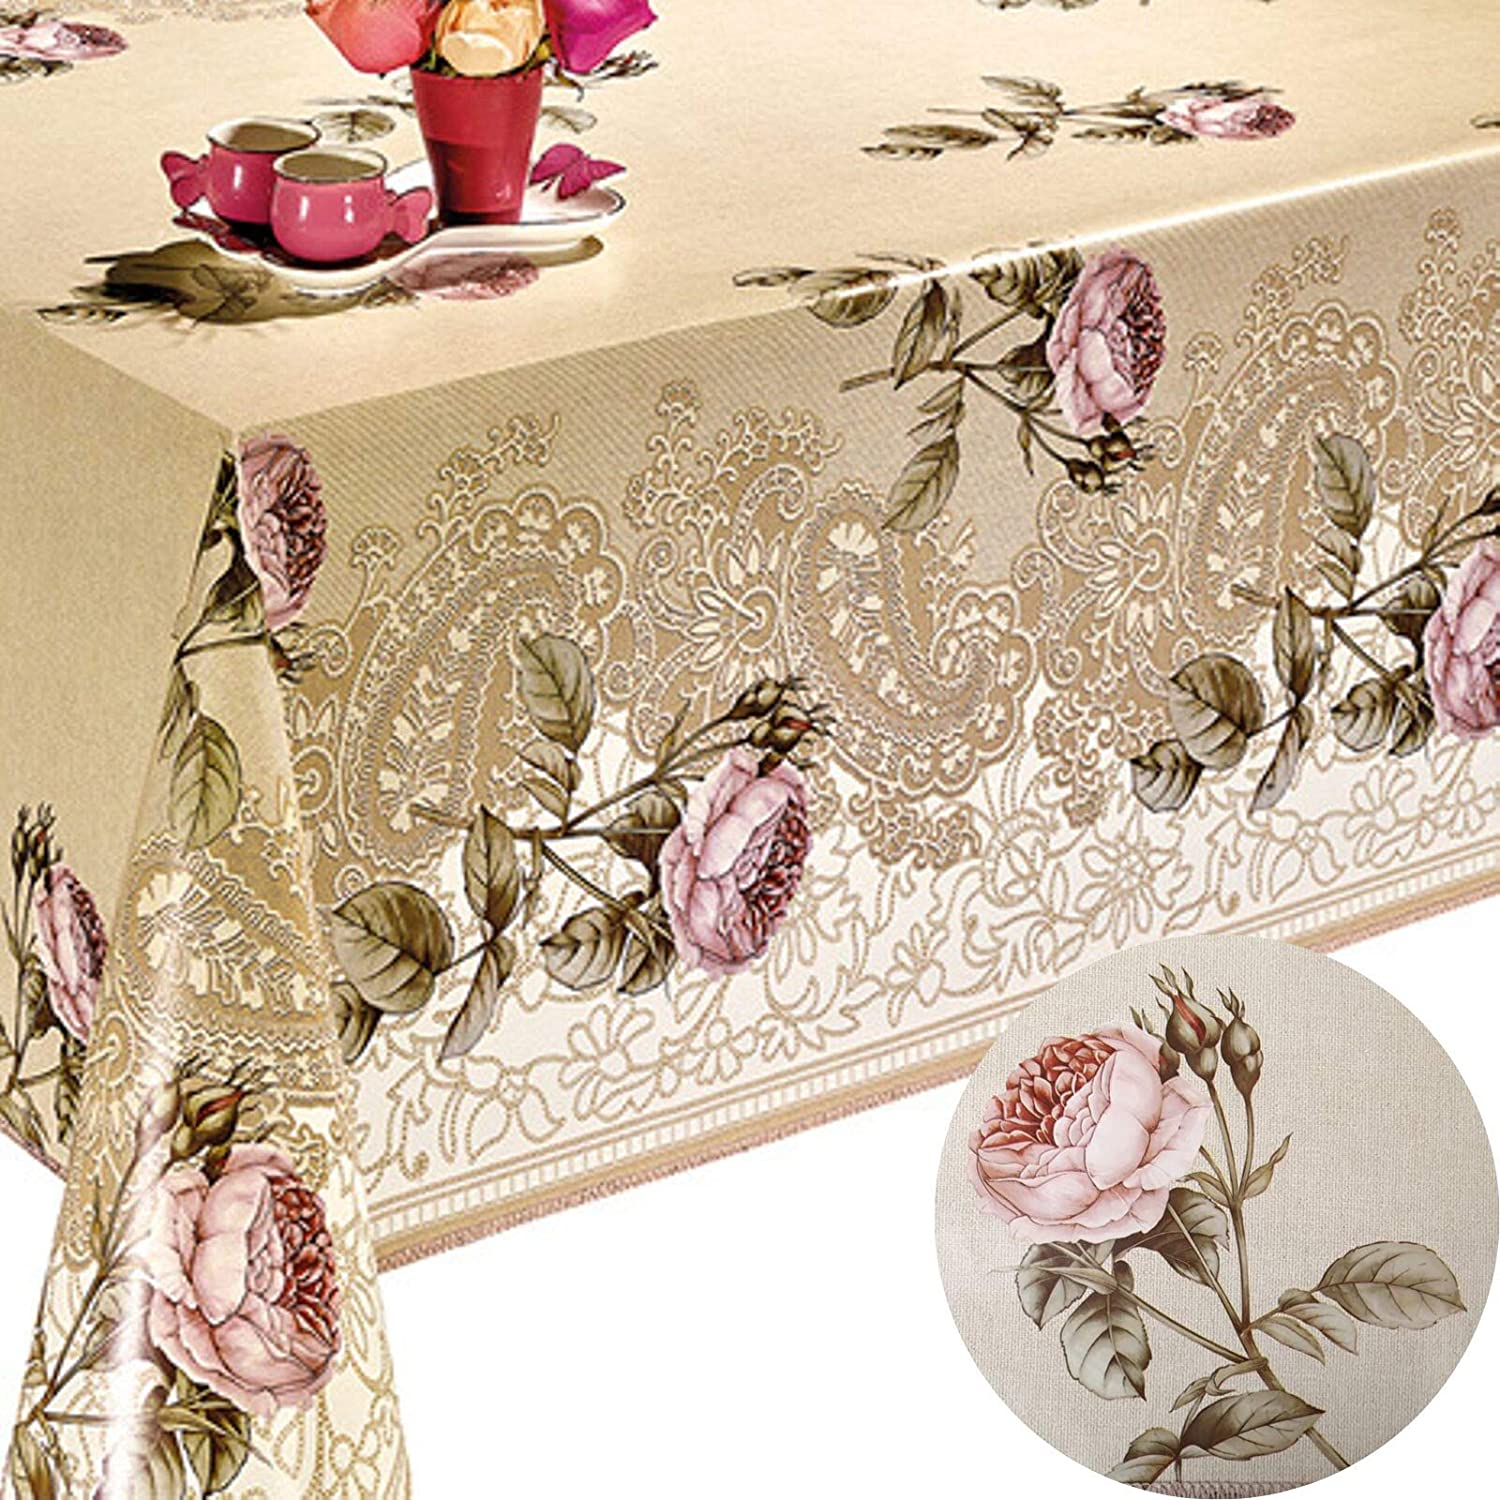 Decoser Heavy Duty Flannel Backed Vinyl Tablecloth with Flannel Backing Easy to Wipe-Clean Oilcloth Waterproof Plastic Rectangle 55x72 inch Table Cover Beige